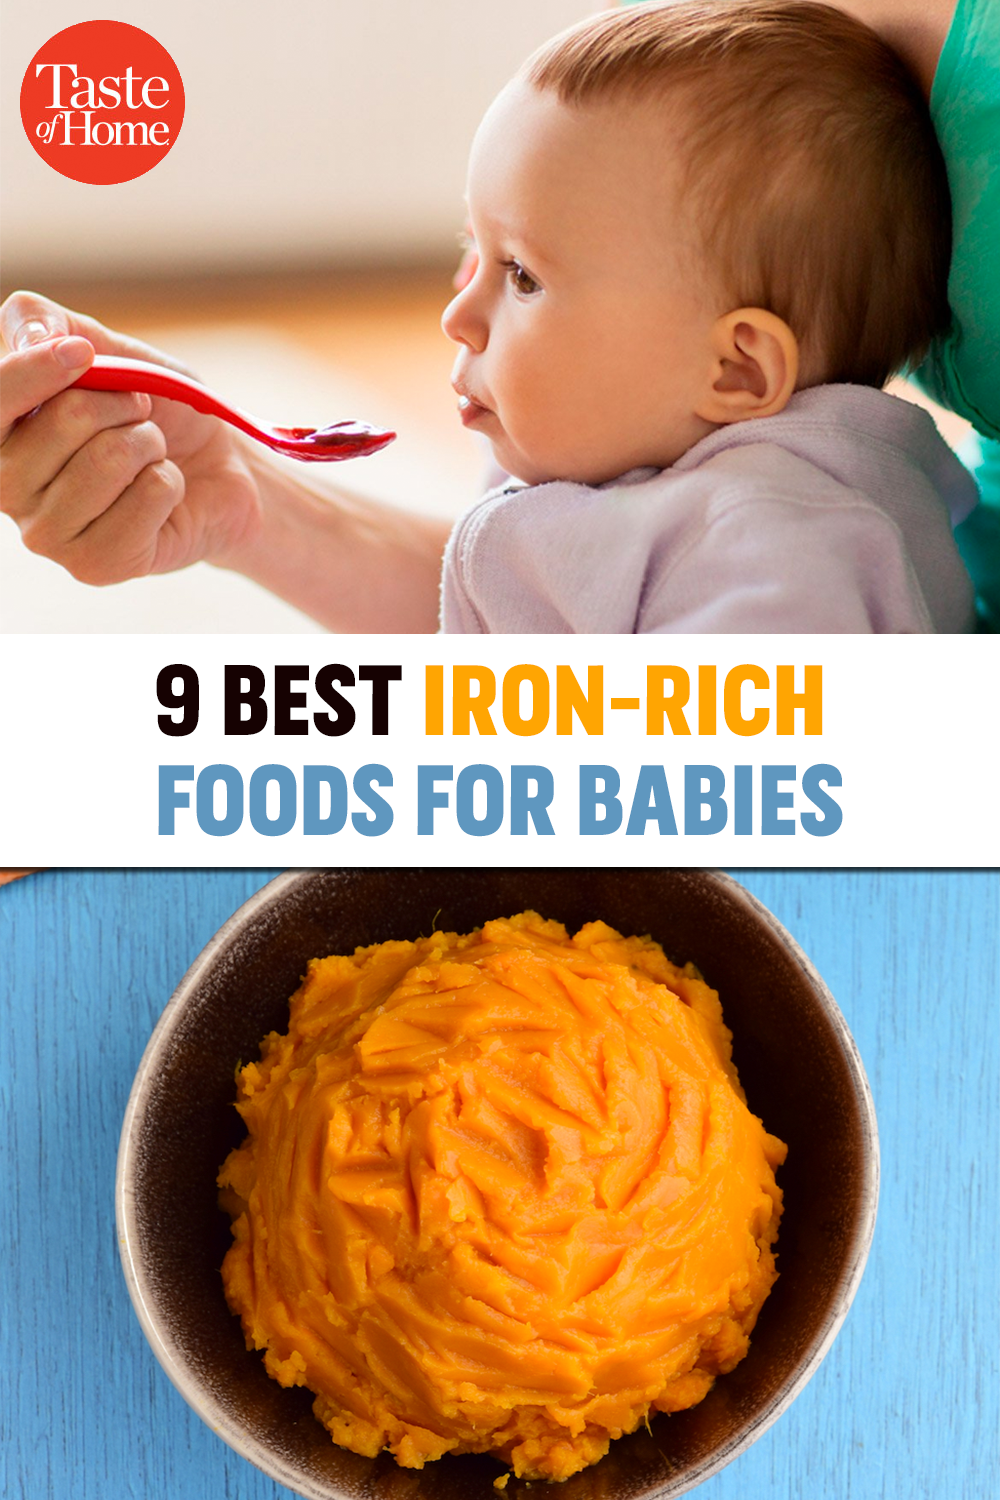 Does Your Baby Need More Iron? Here Are 9 Foods to Shop